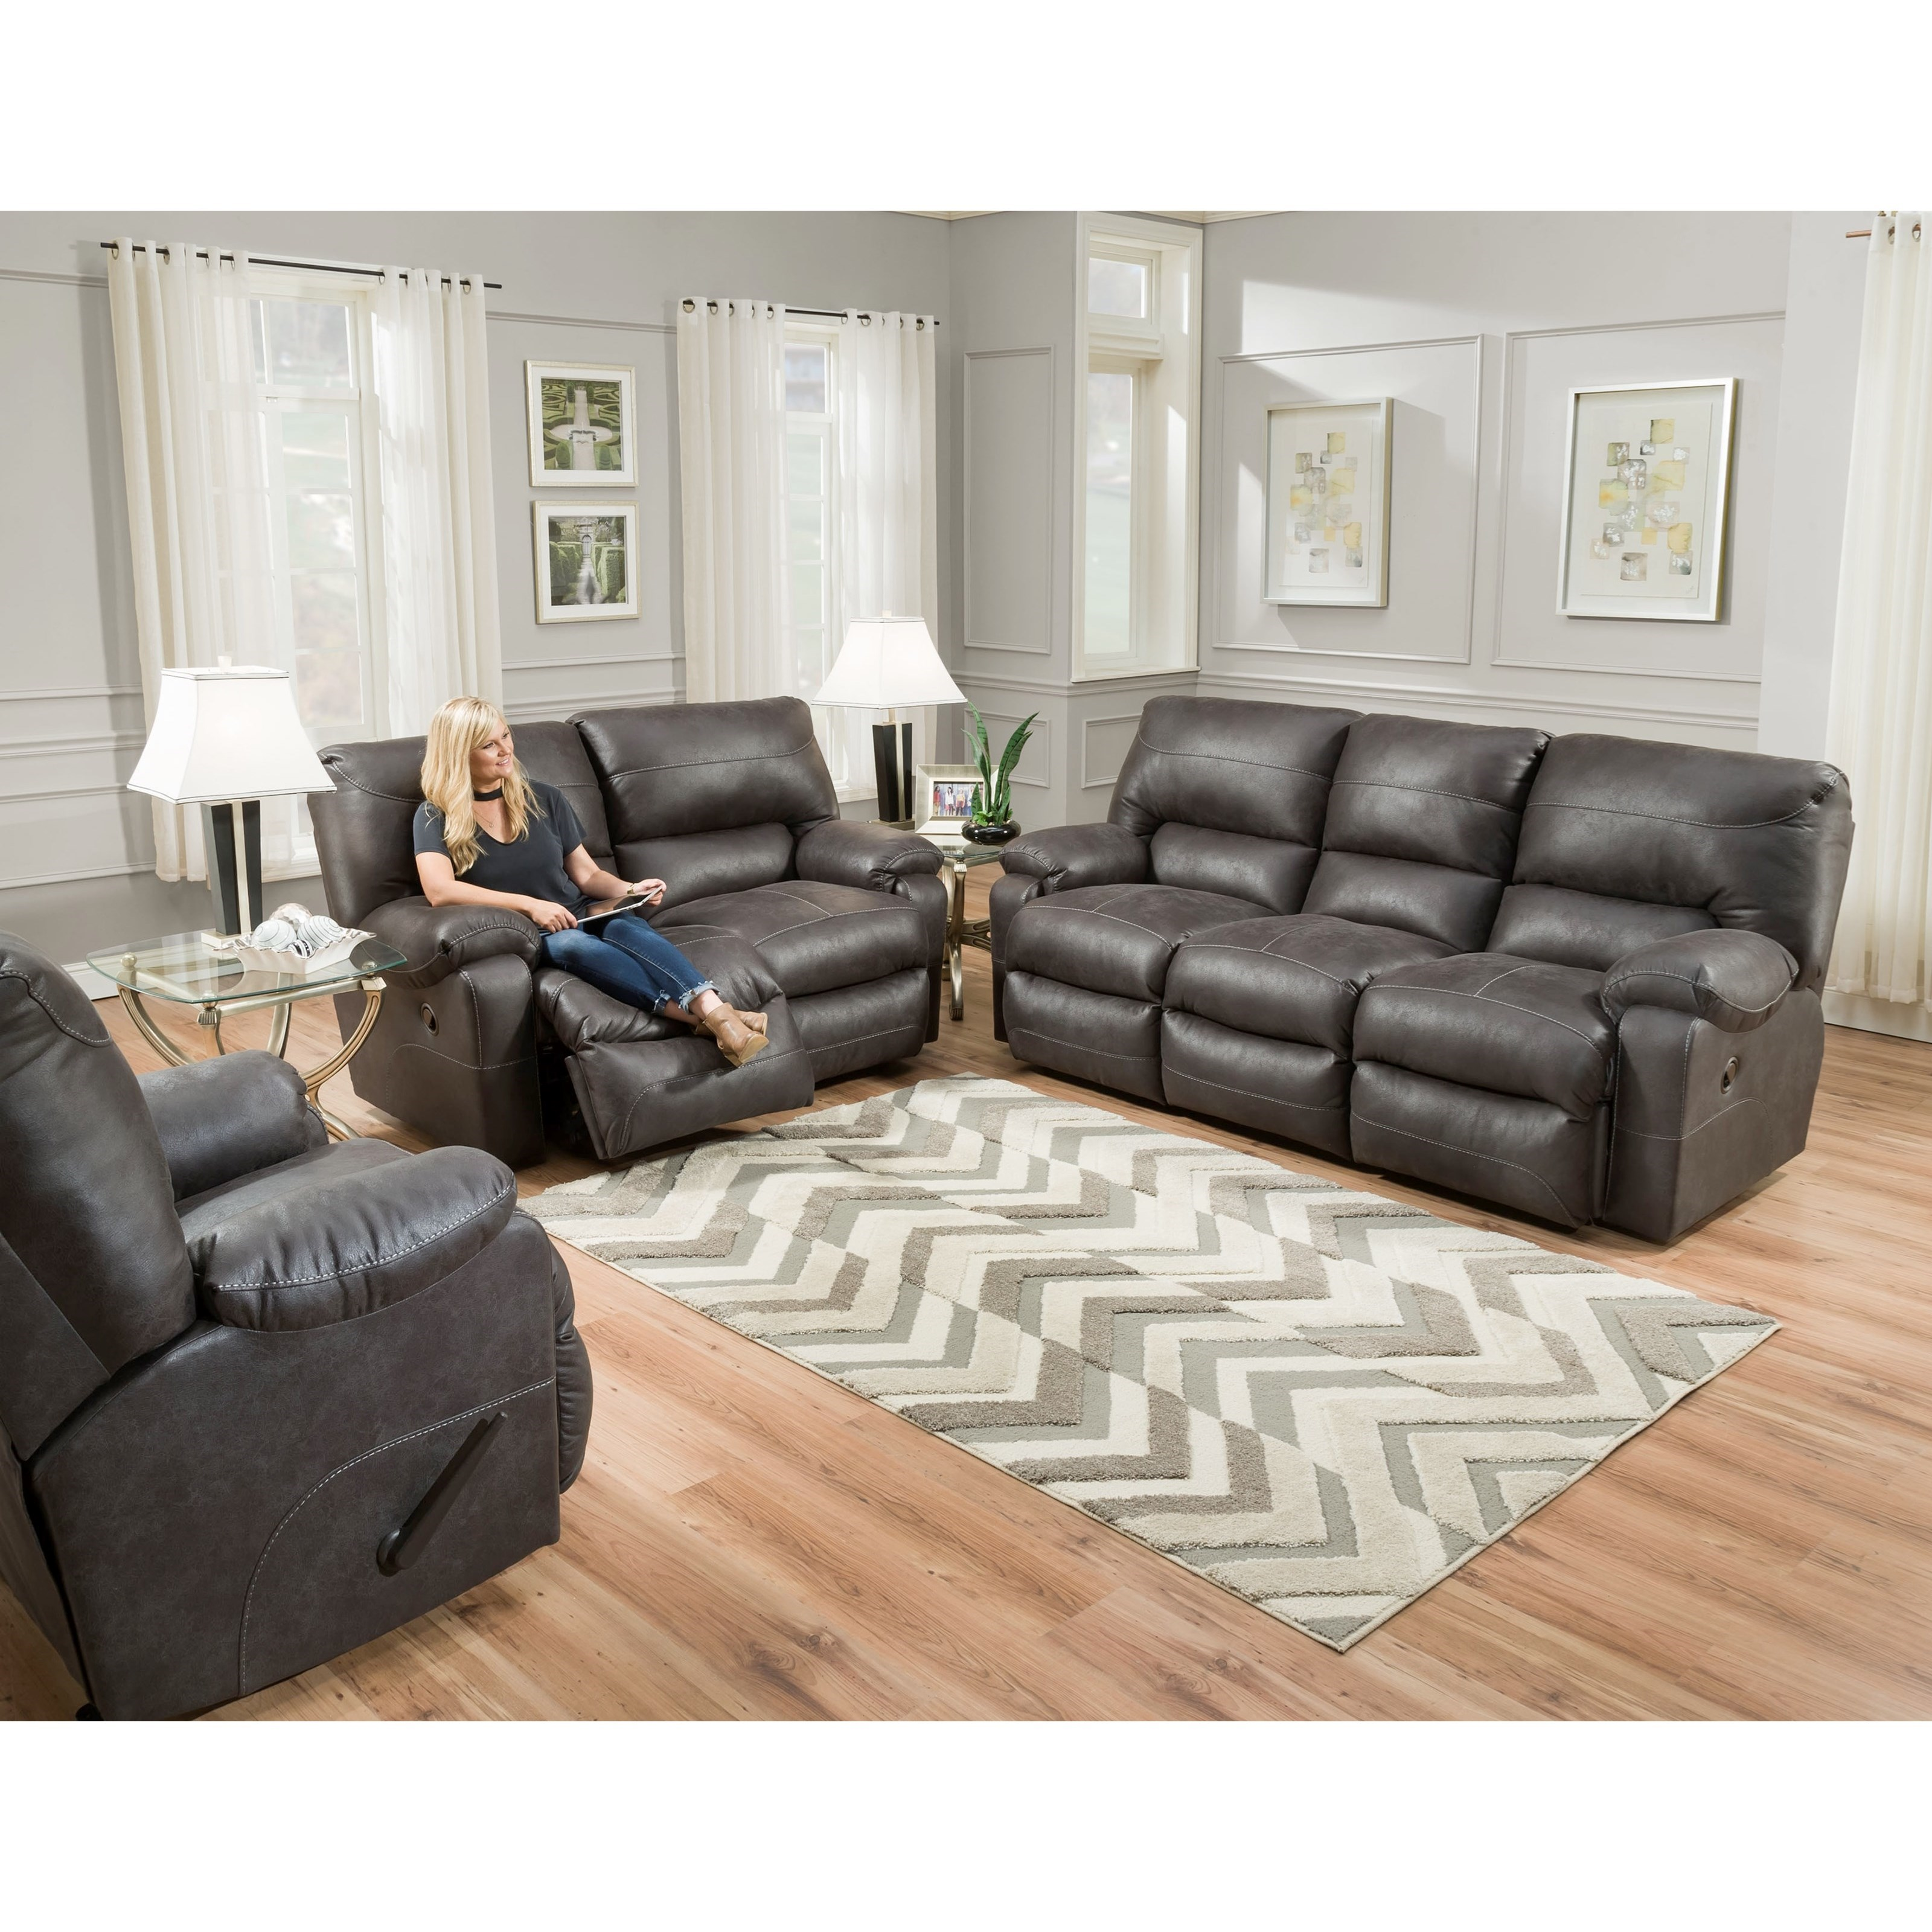 Franklin Vip Power Reclining Sofa With Usb Ports Howell